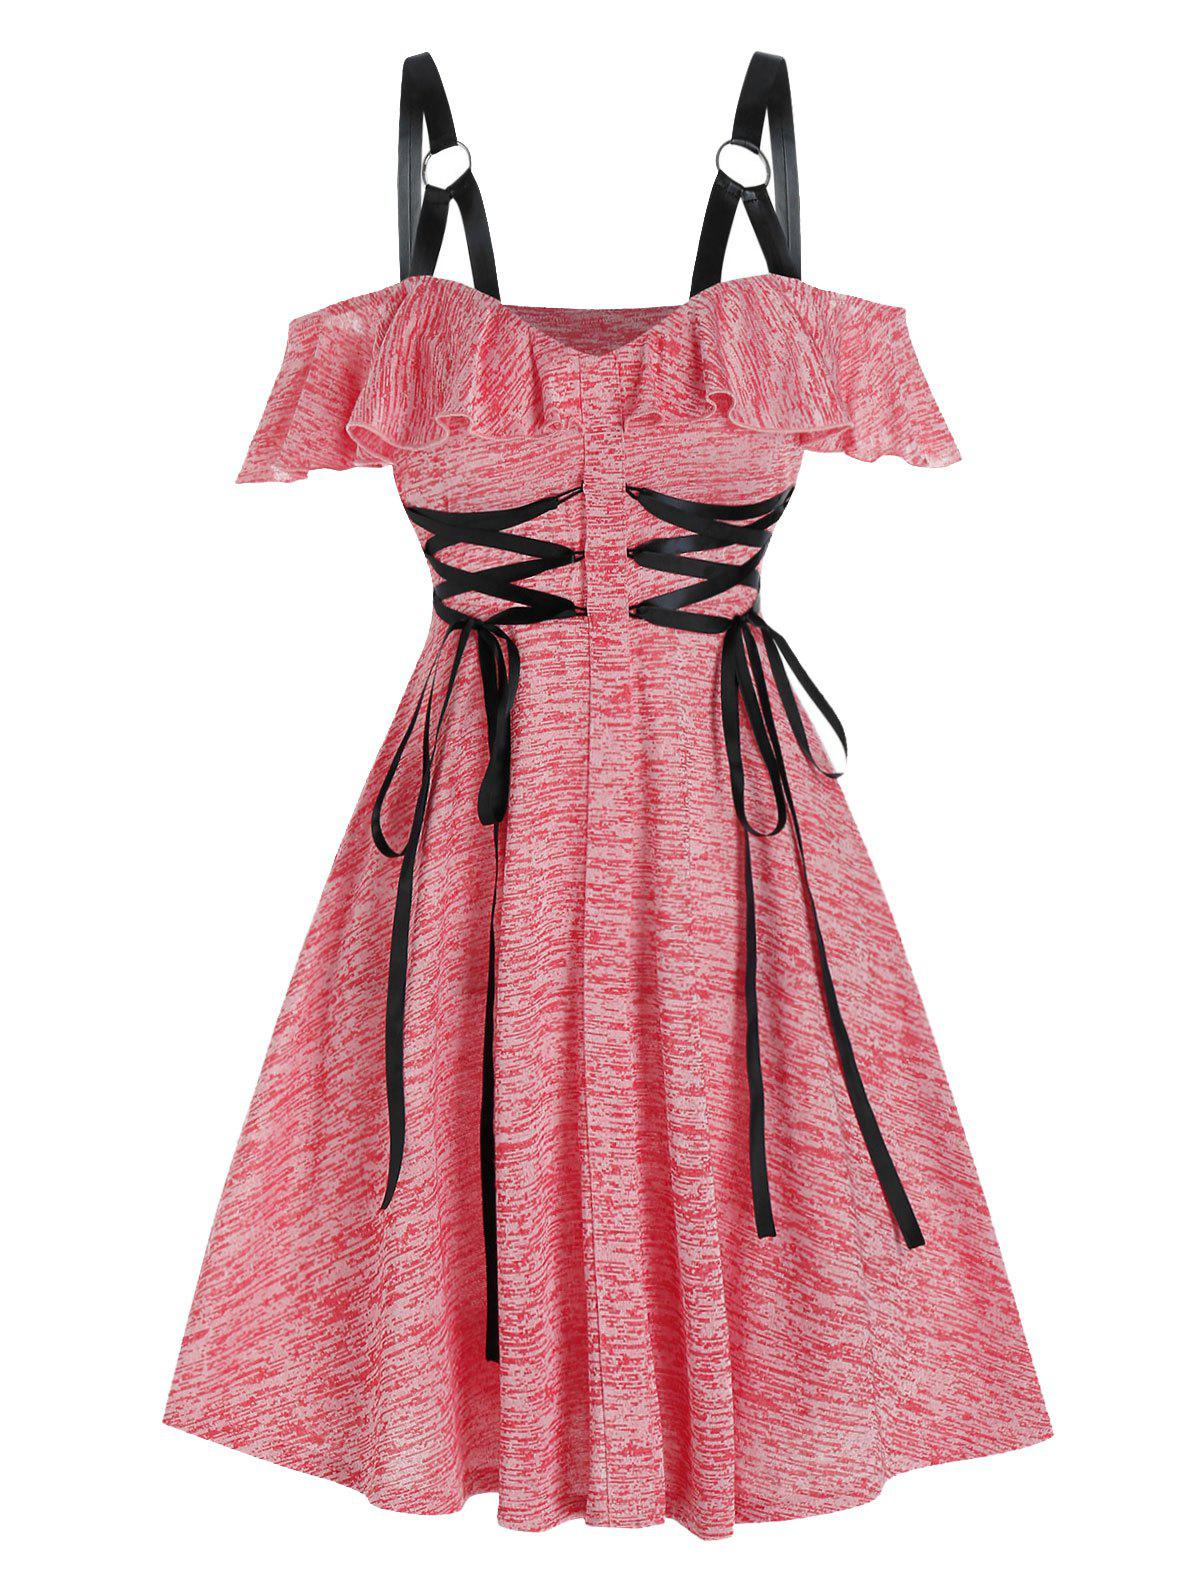 Trendy Cold Shoulder Lace-up Harness Insert Heathered Dress